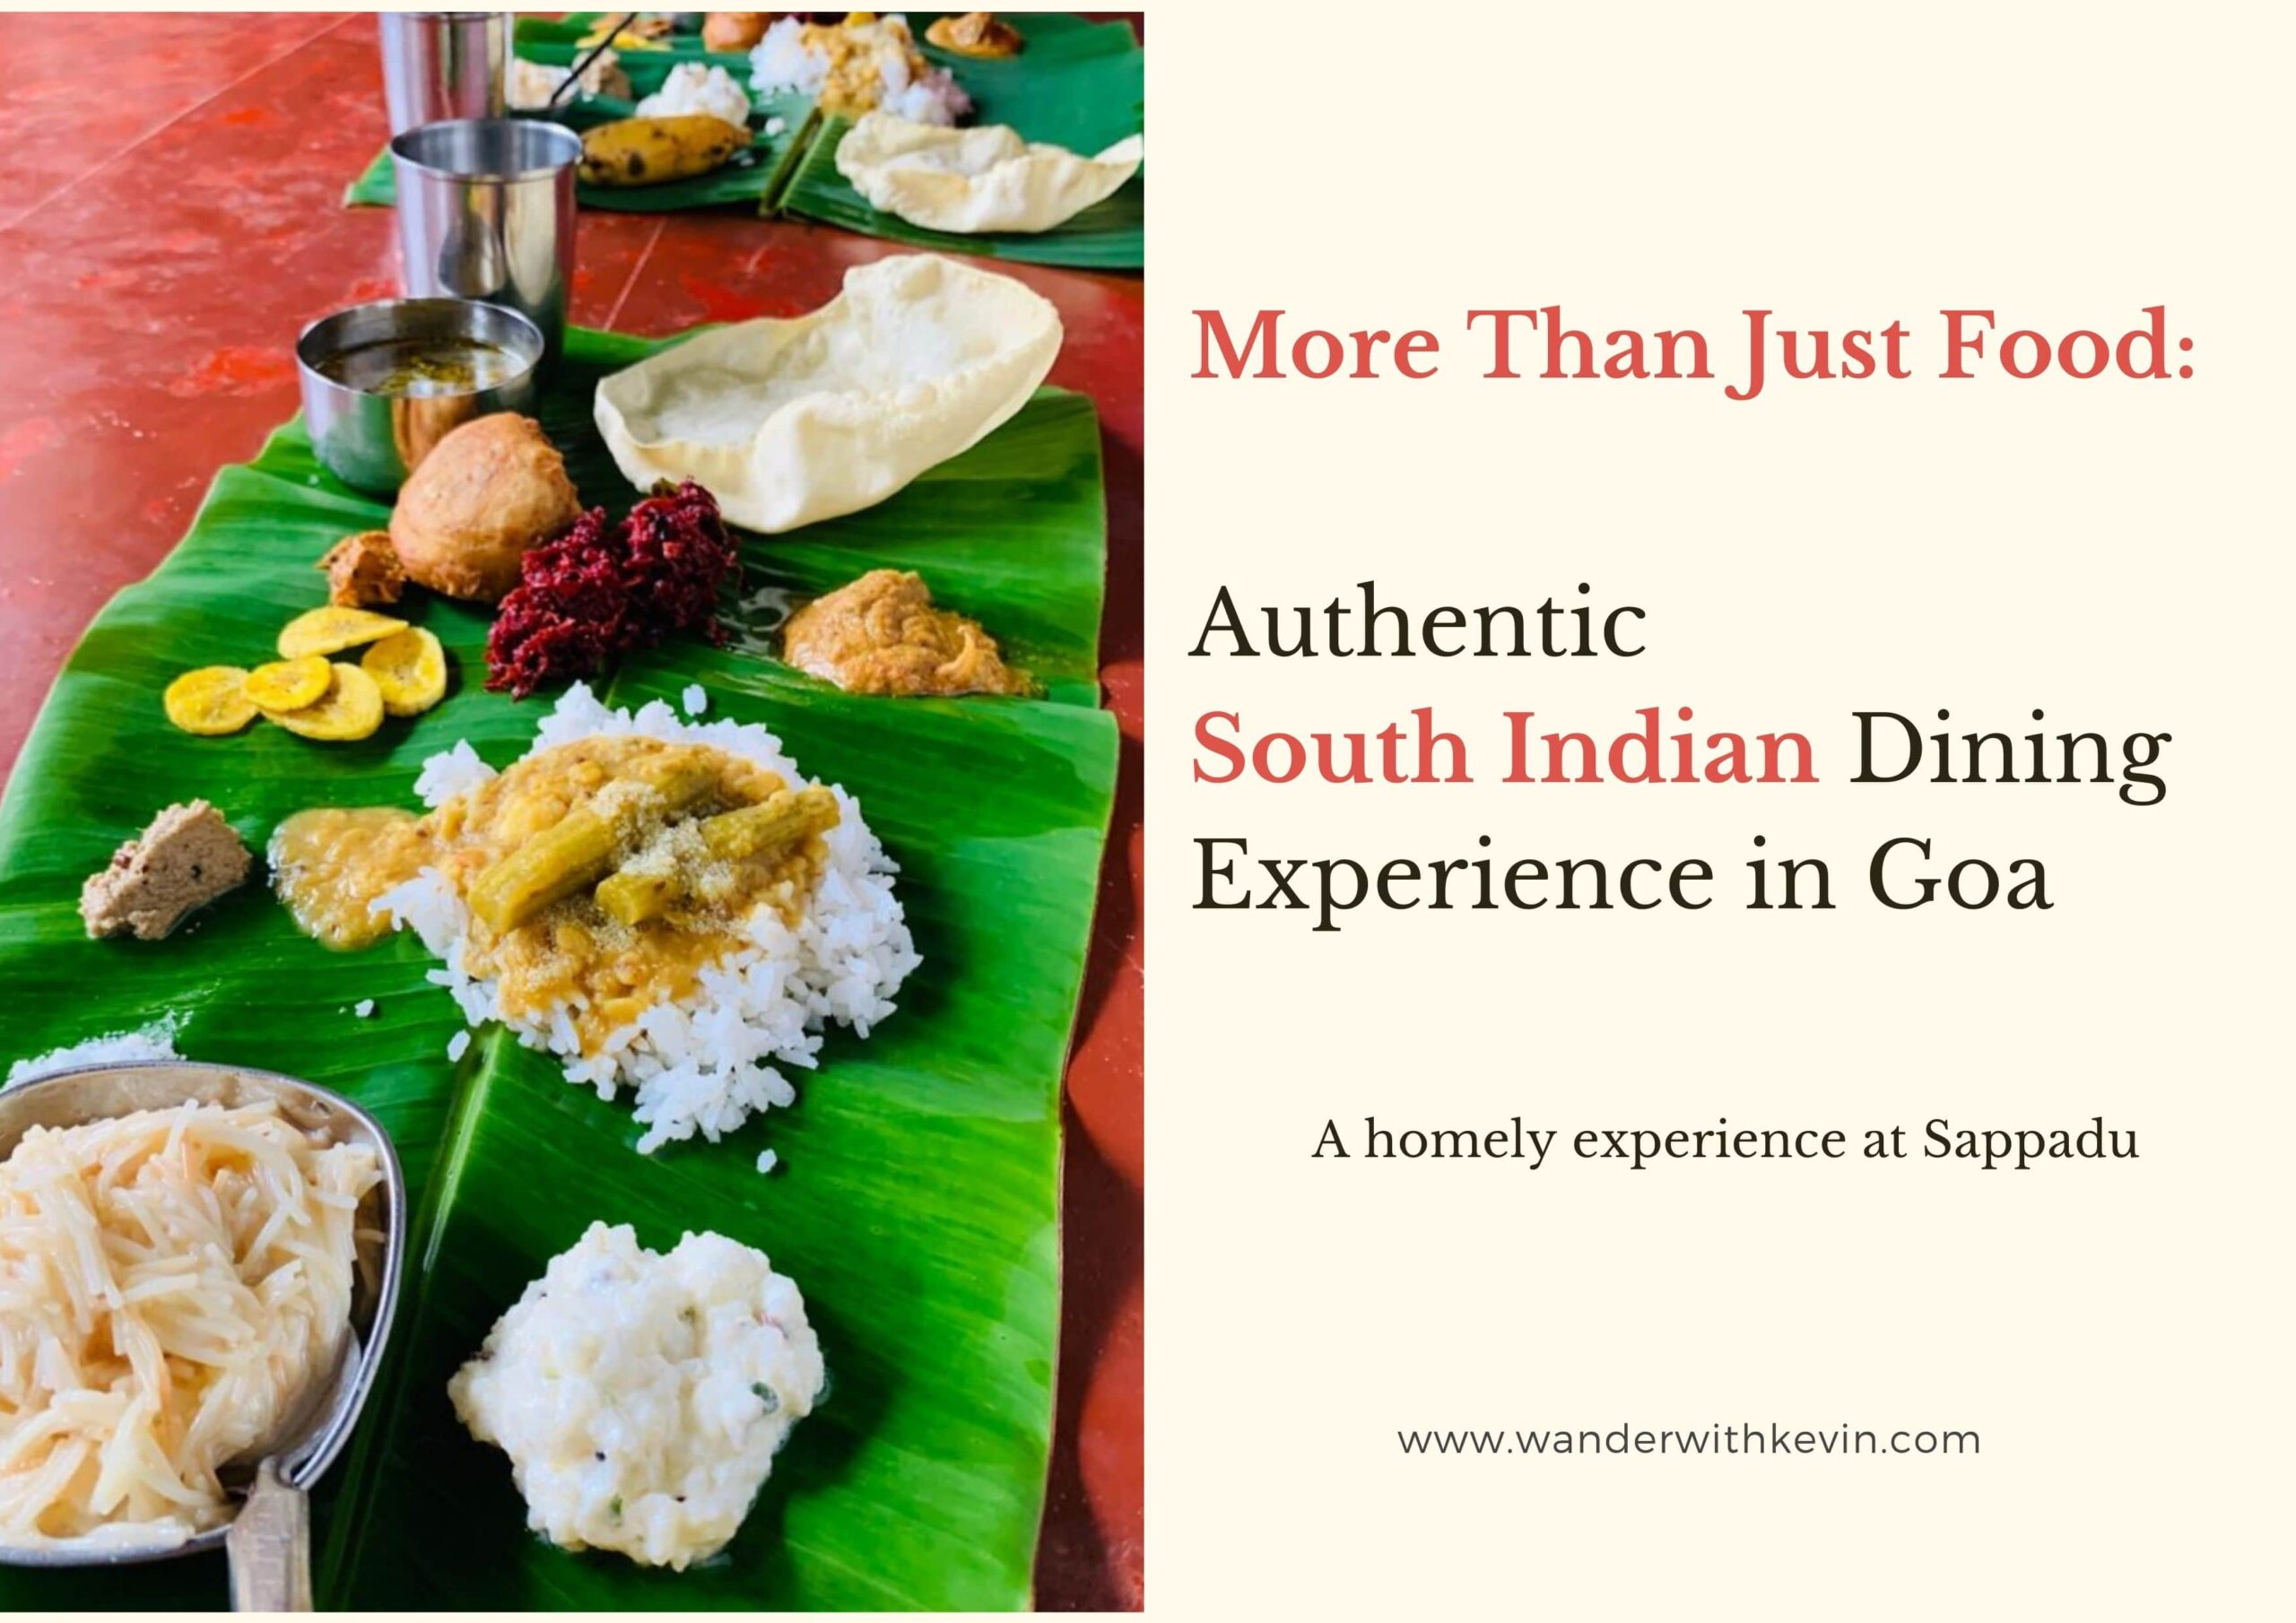 south indian dining experience in goa by wanderwithkevin_min